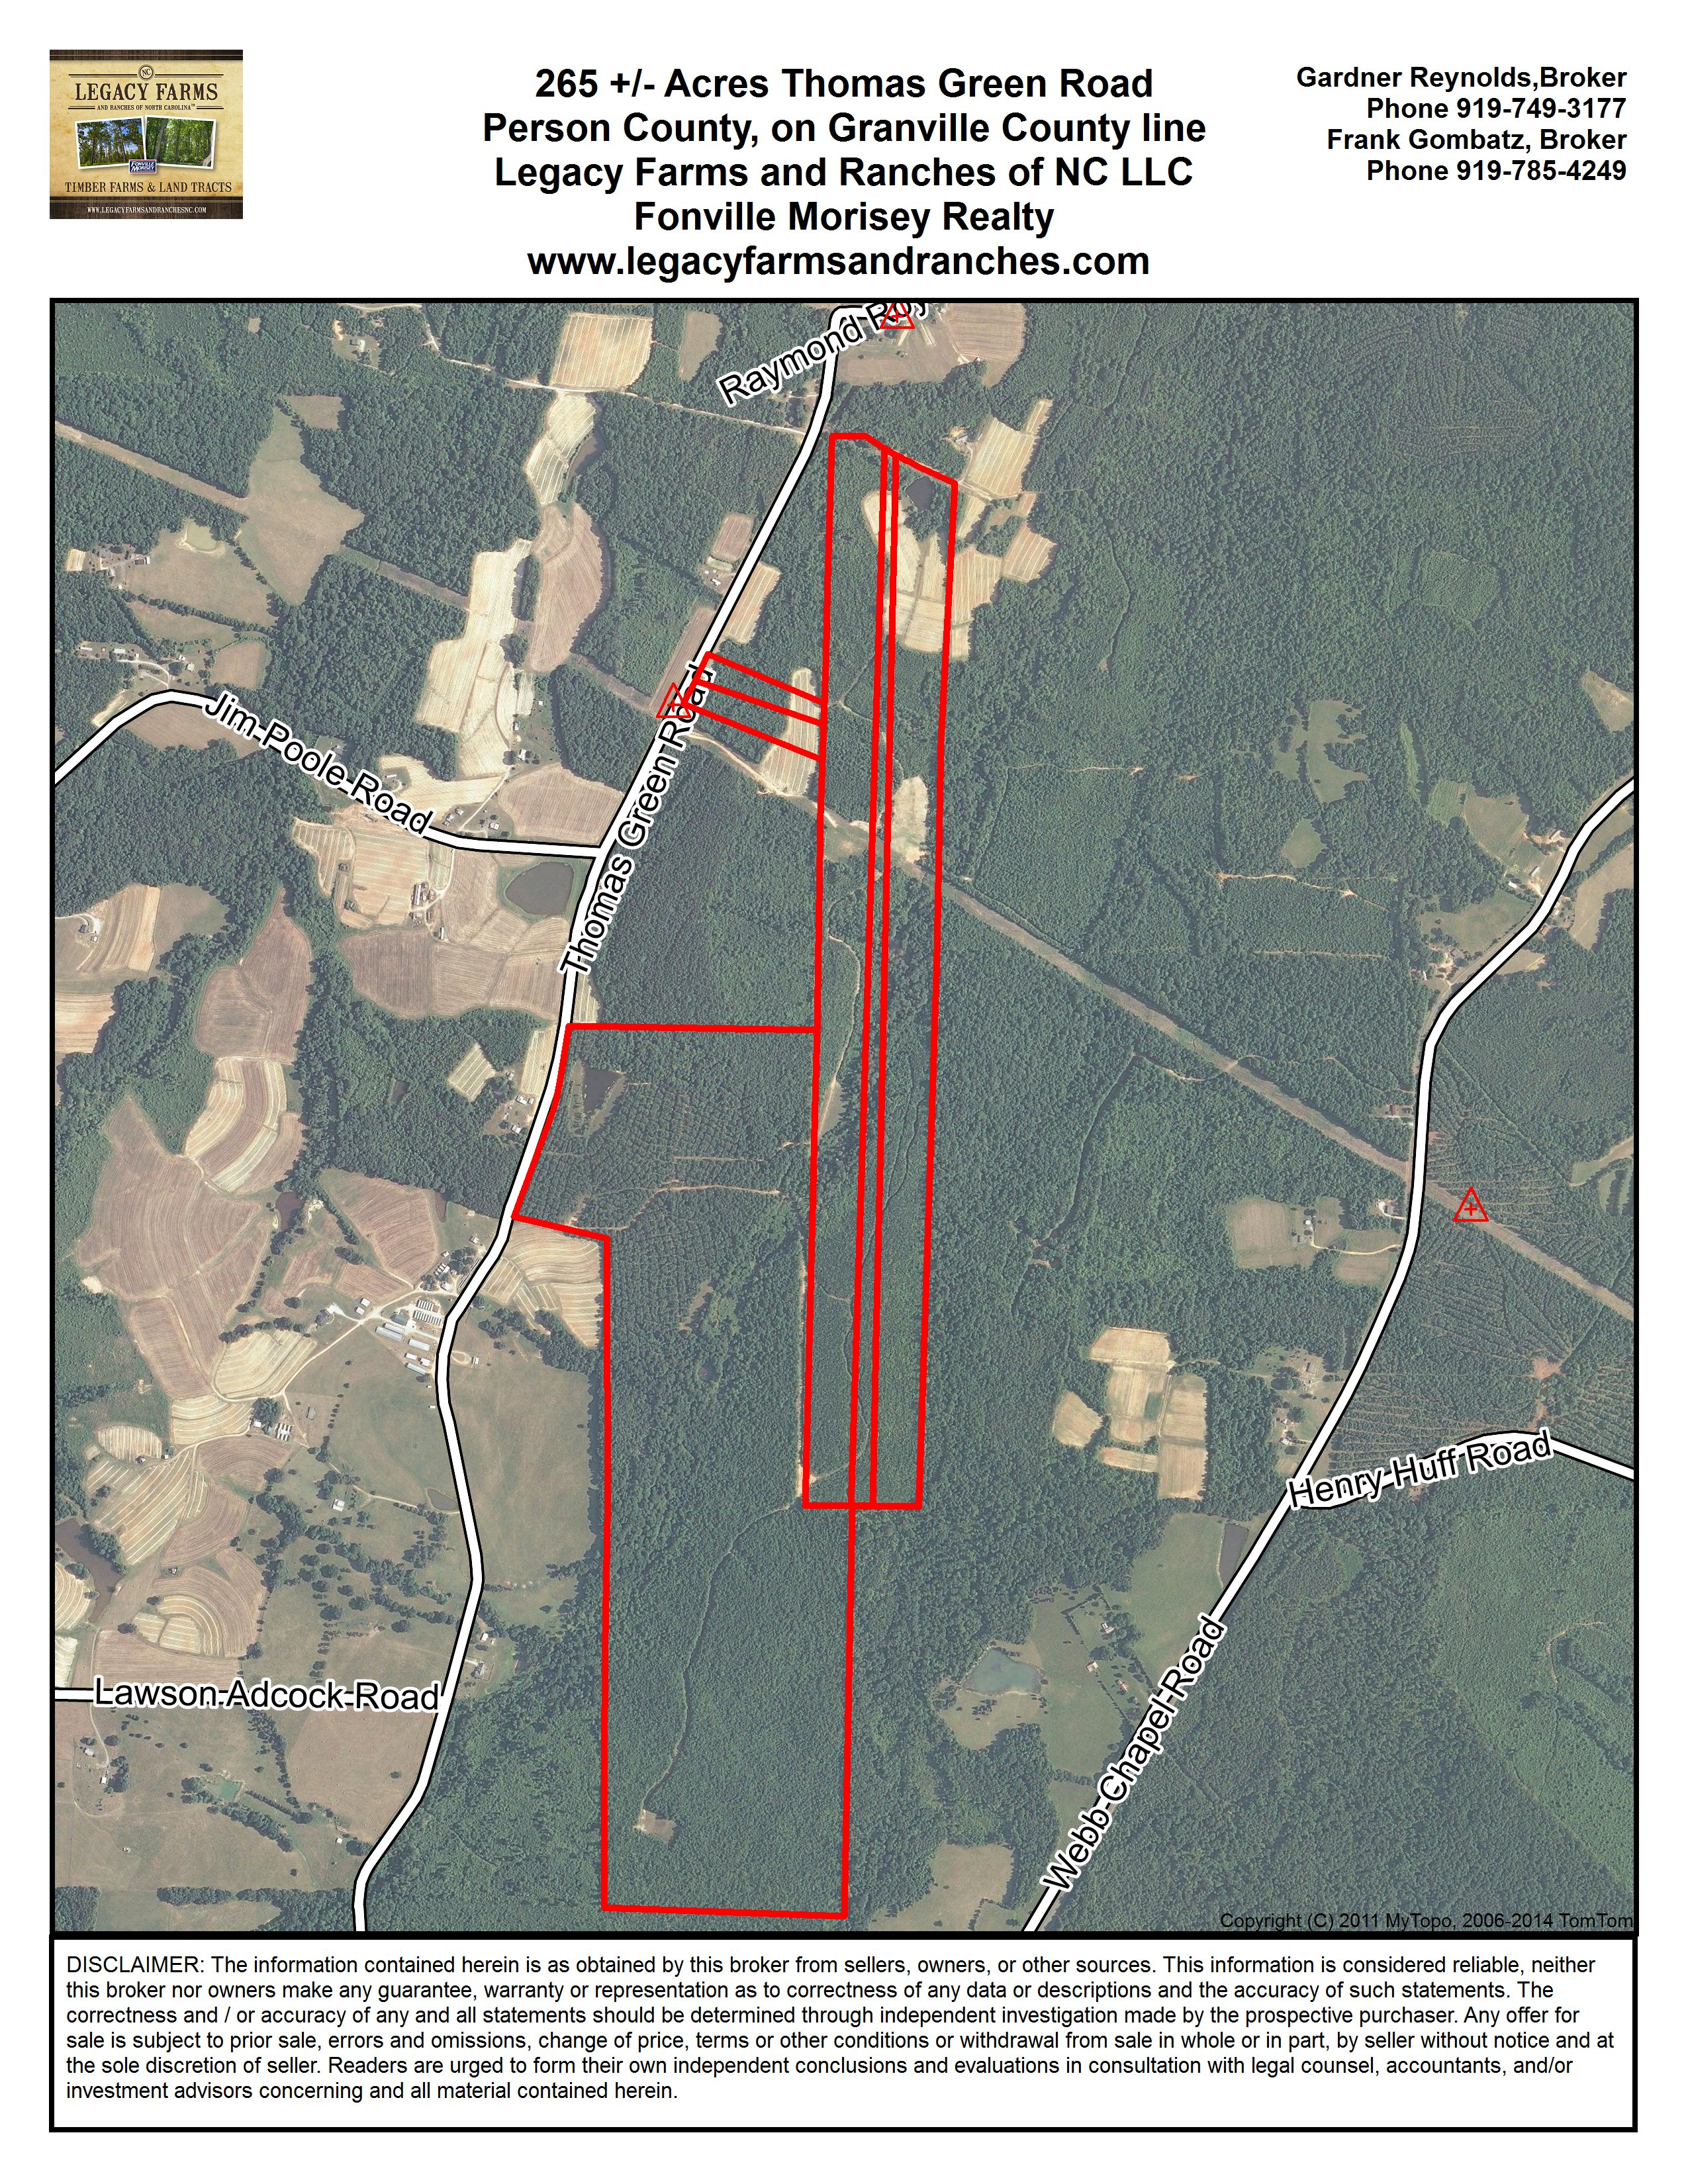 322 Acres on Thomas Green Road in Person County NC